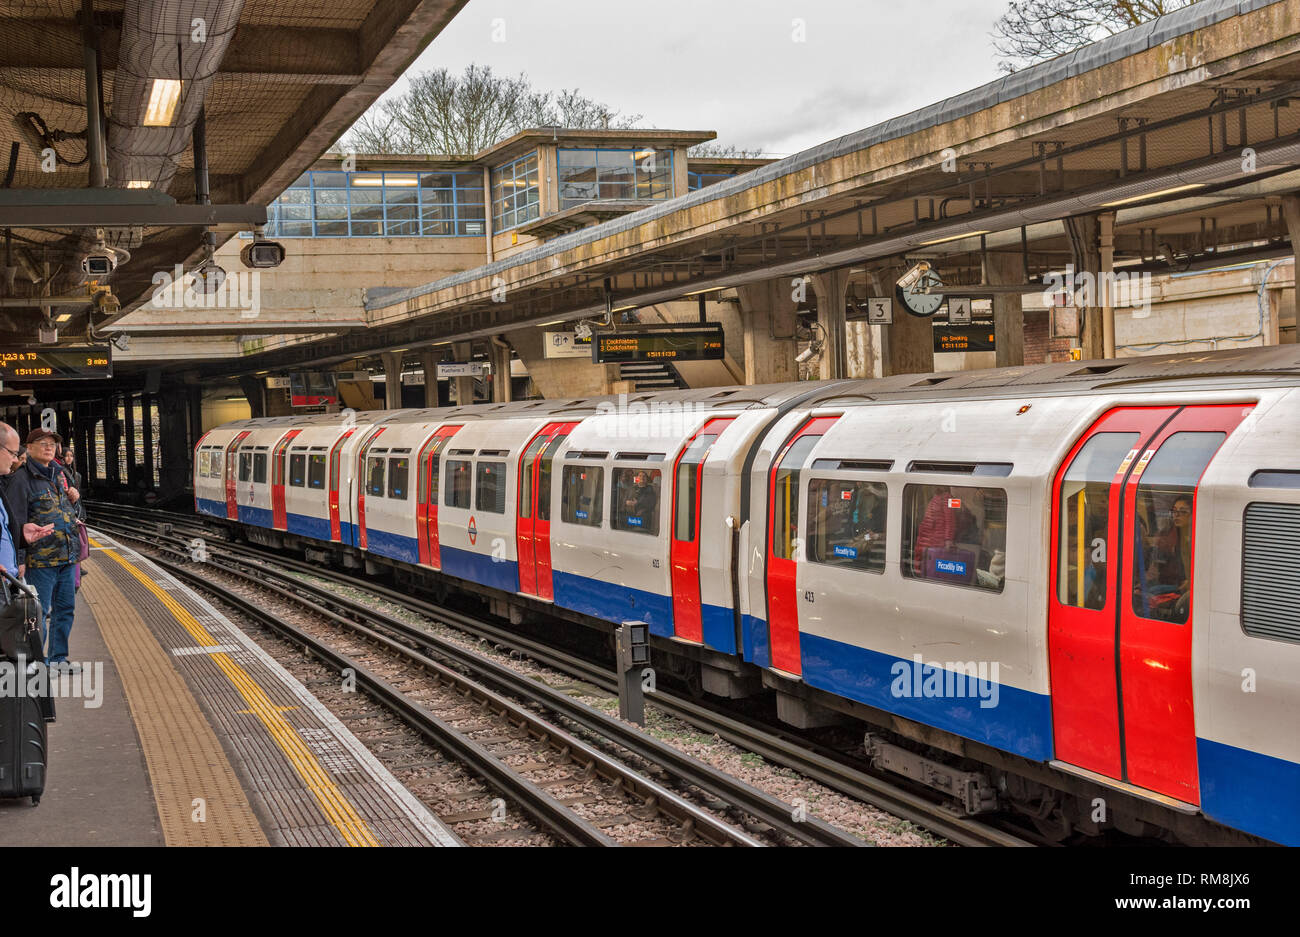 LONDON UNDERGROUND OR TUBE TRAIN ARRIVING AT A STATION ON PICCADILLY LINE WITH WAITING PASSENGERS - Stock Image